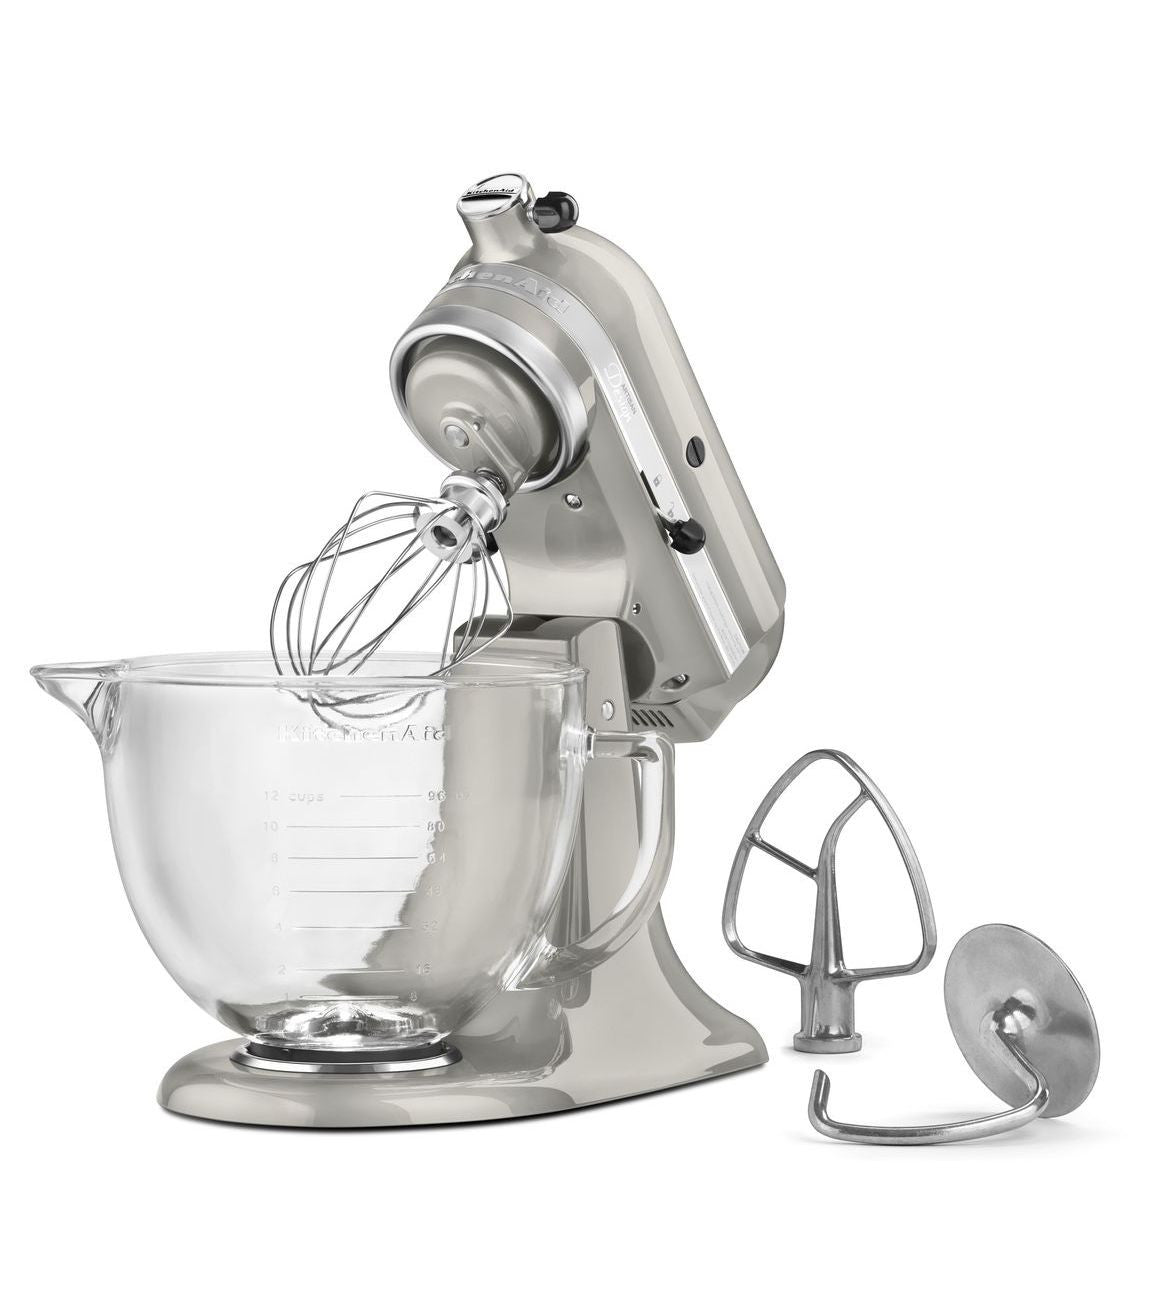 Kitchenaid 5 Qt. Artisan Design Series with Glass Bowl - Sugar Pearl Silver KSM155GBSR